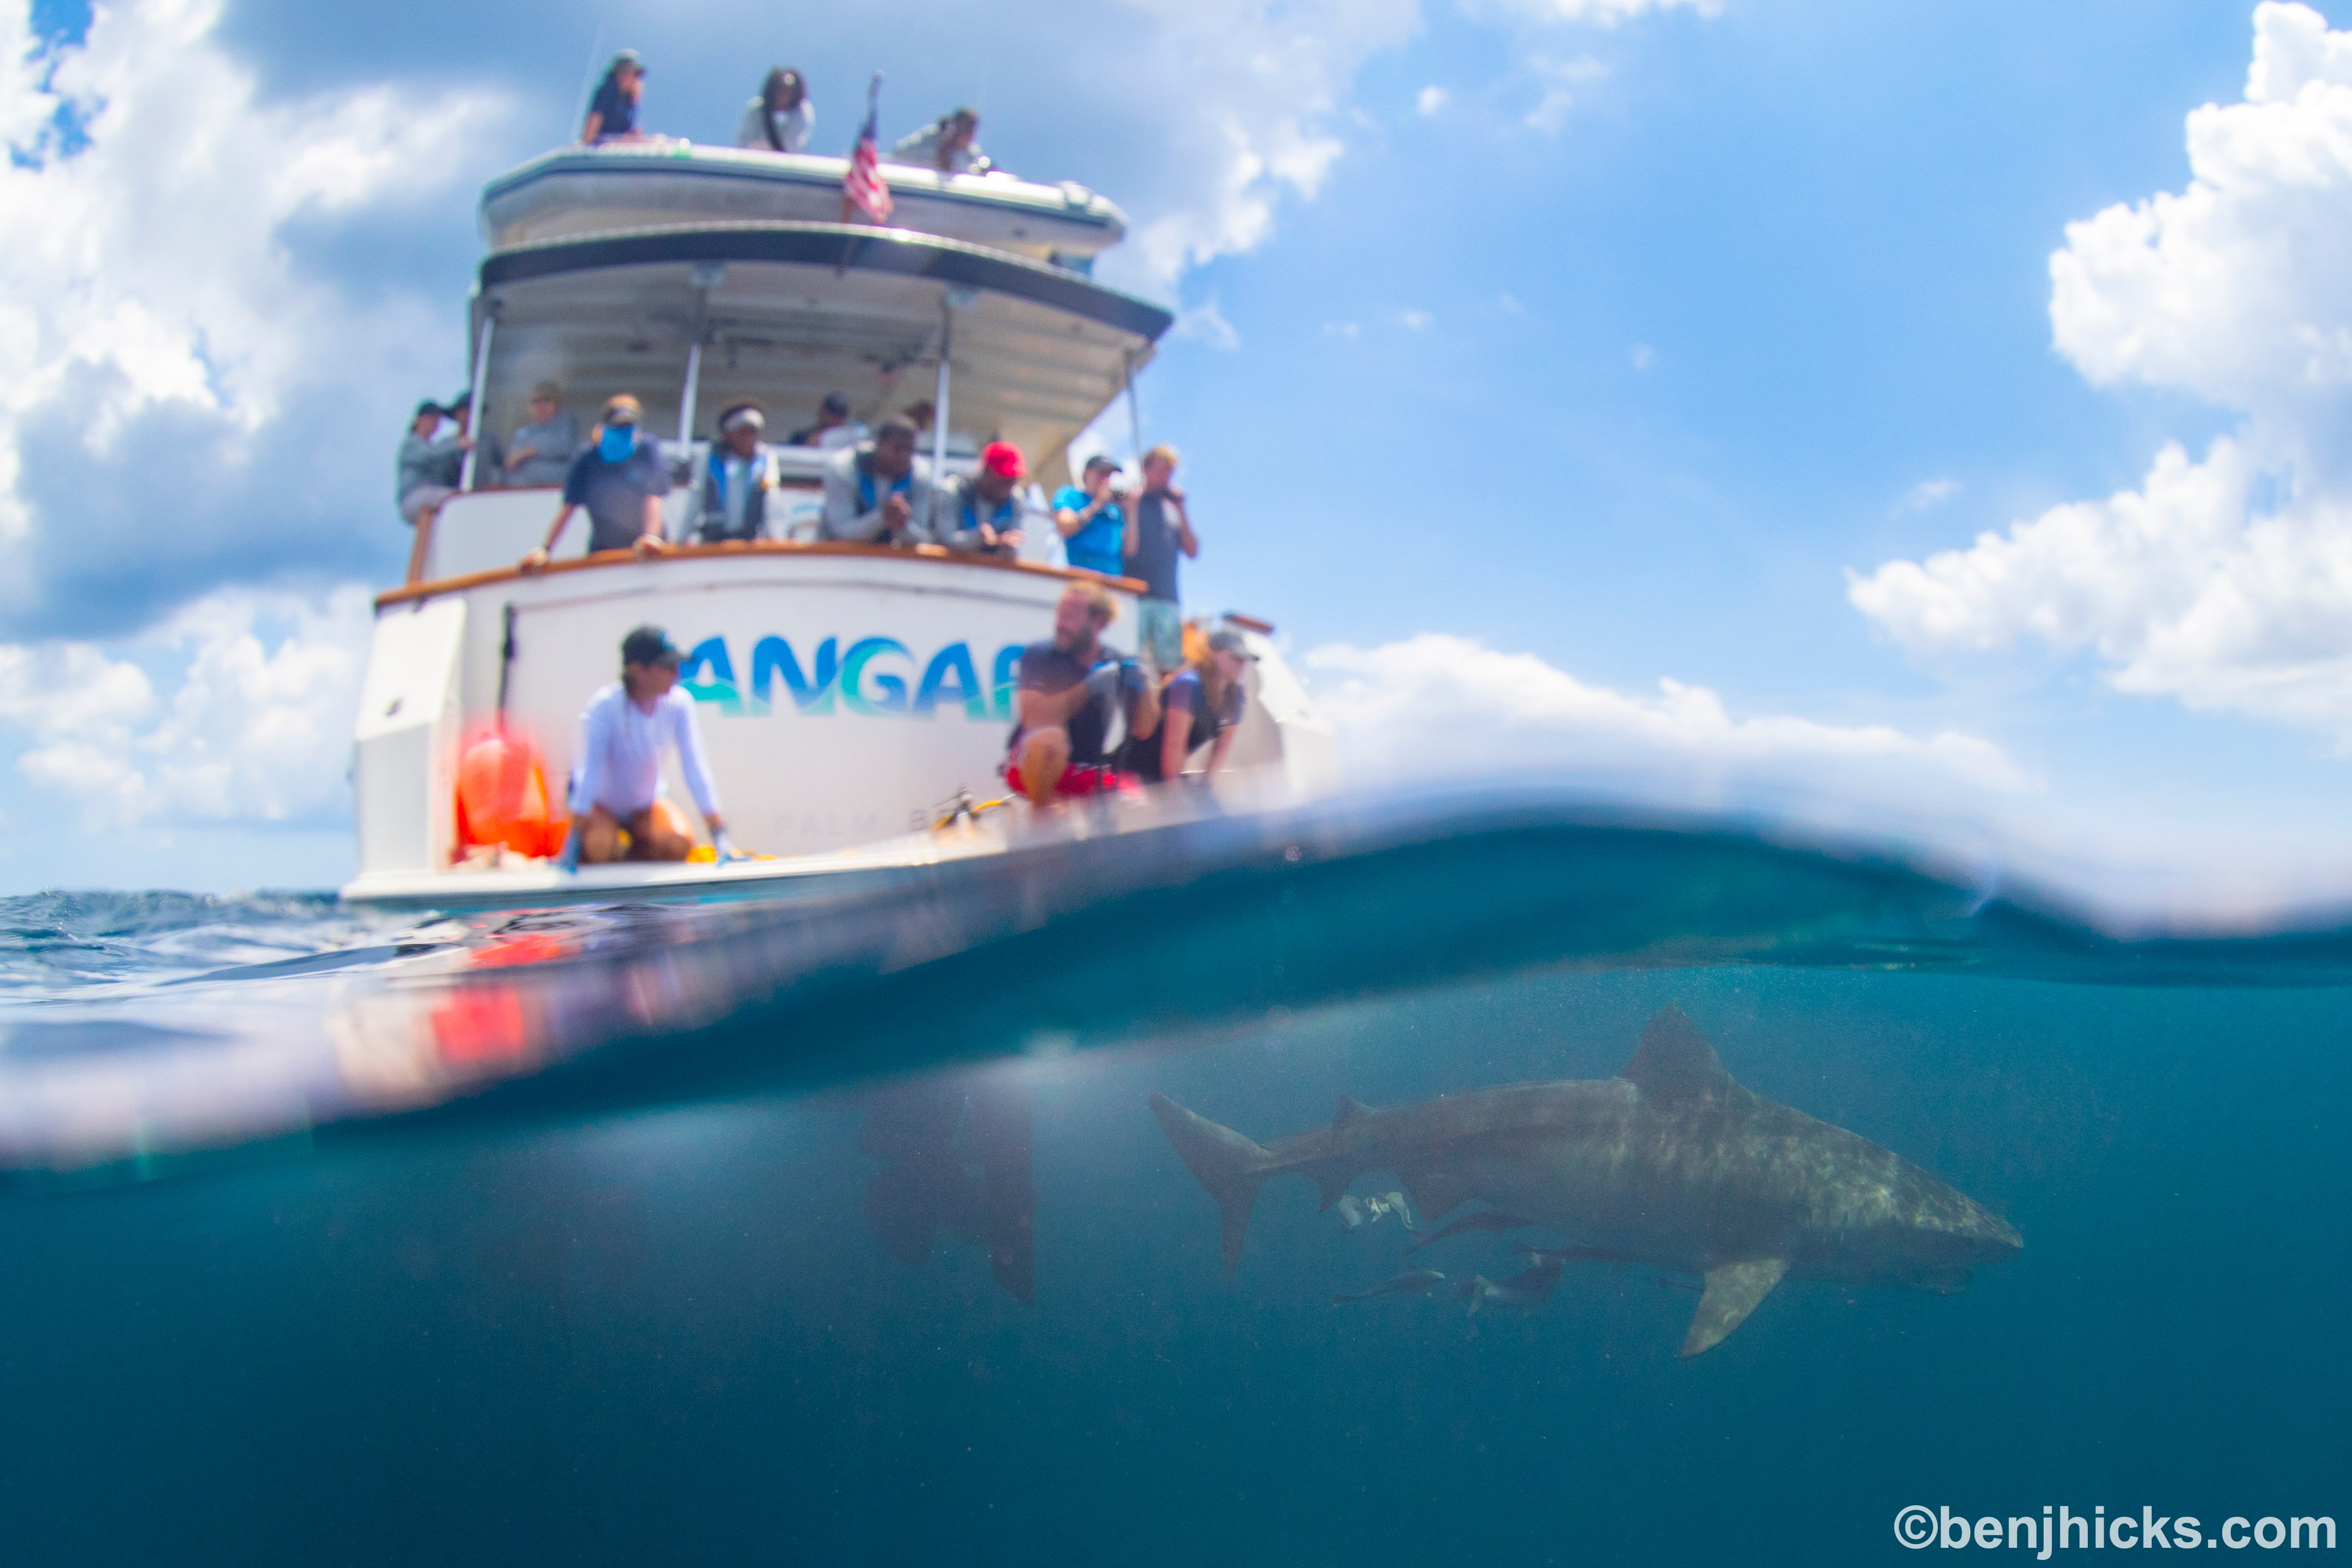 EXP 27: Great work everyone! The team caught, tagged and released this beautiful 11ft tiger shark; PC: Ben J. Hicks